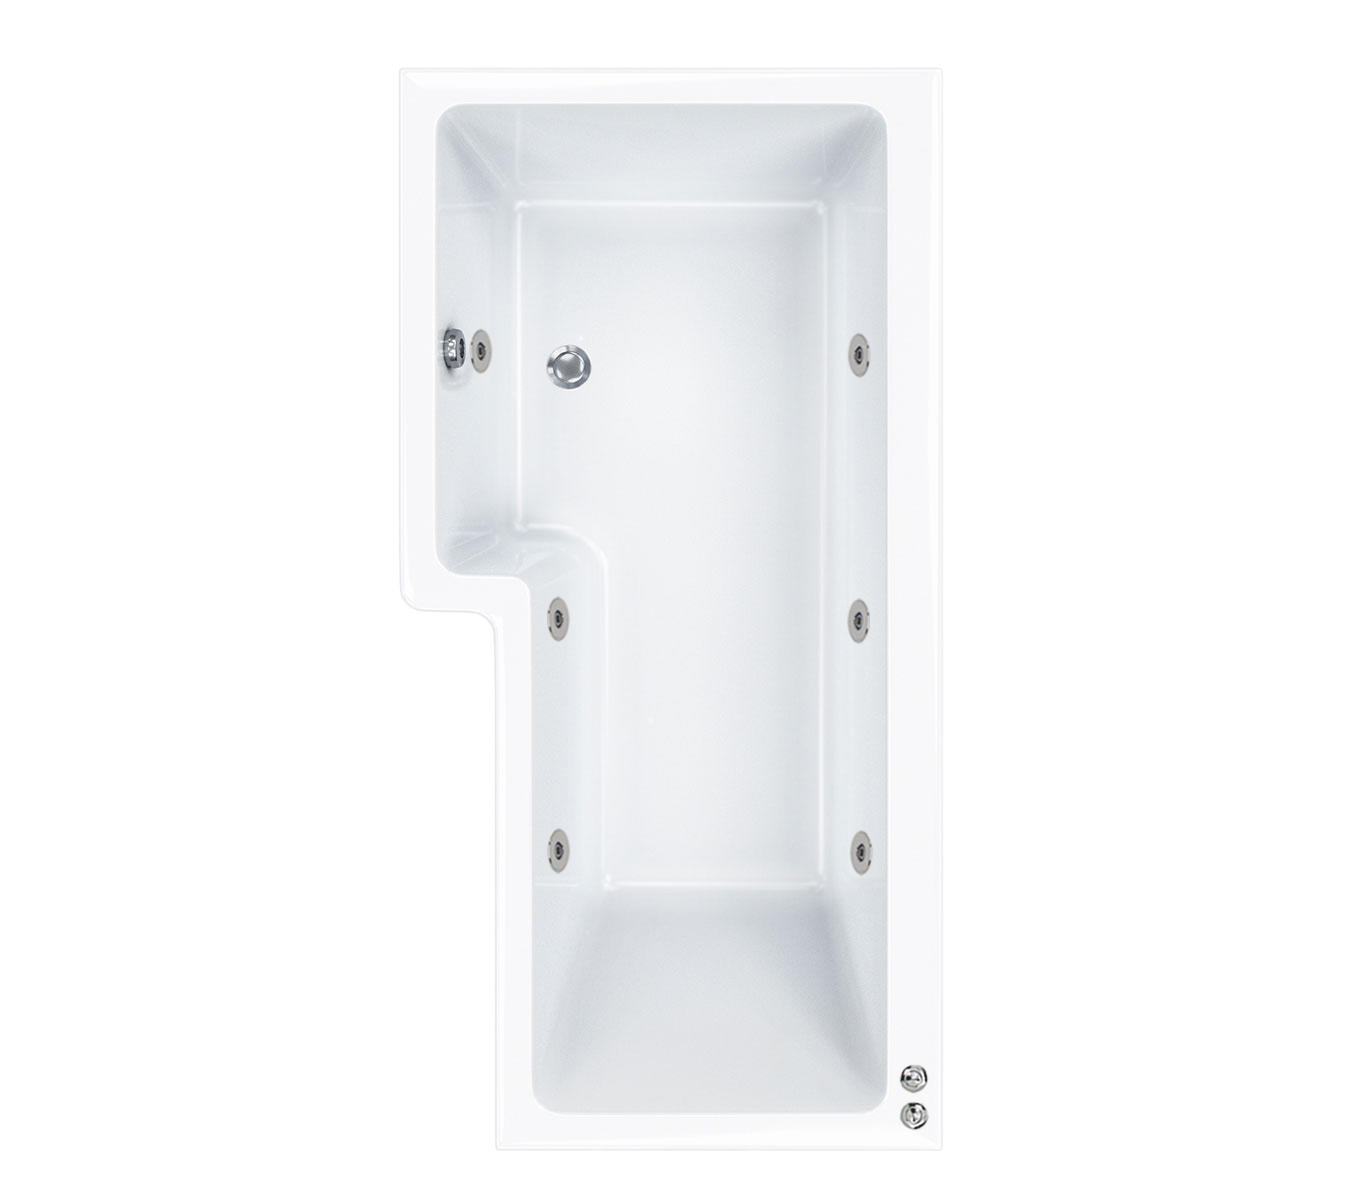 6 jet LH Carron 1500 mm Quantum L Shape Whirlpool Shower Bath